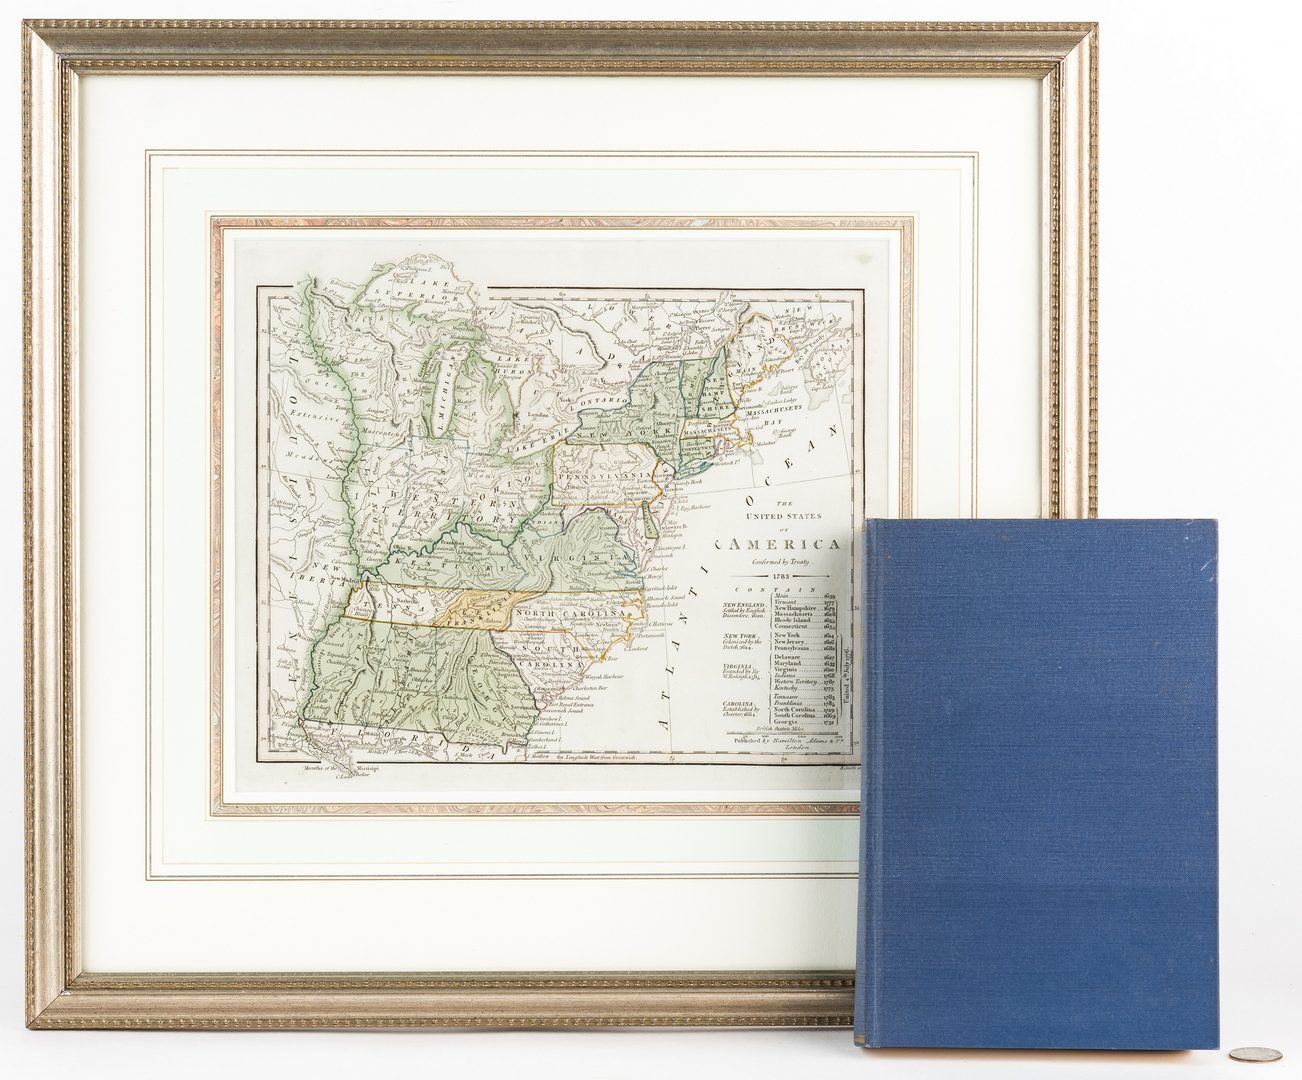 Lot 252: State of Franklin, TN 1827 Map, book, 2 items